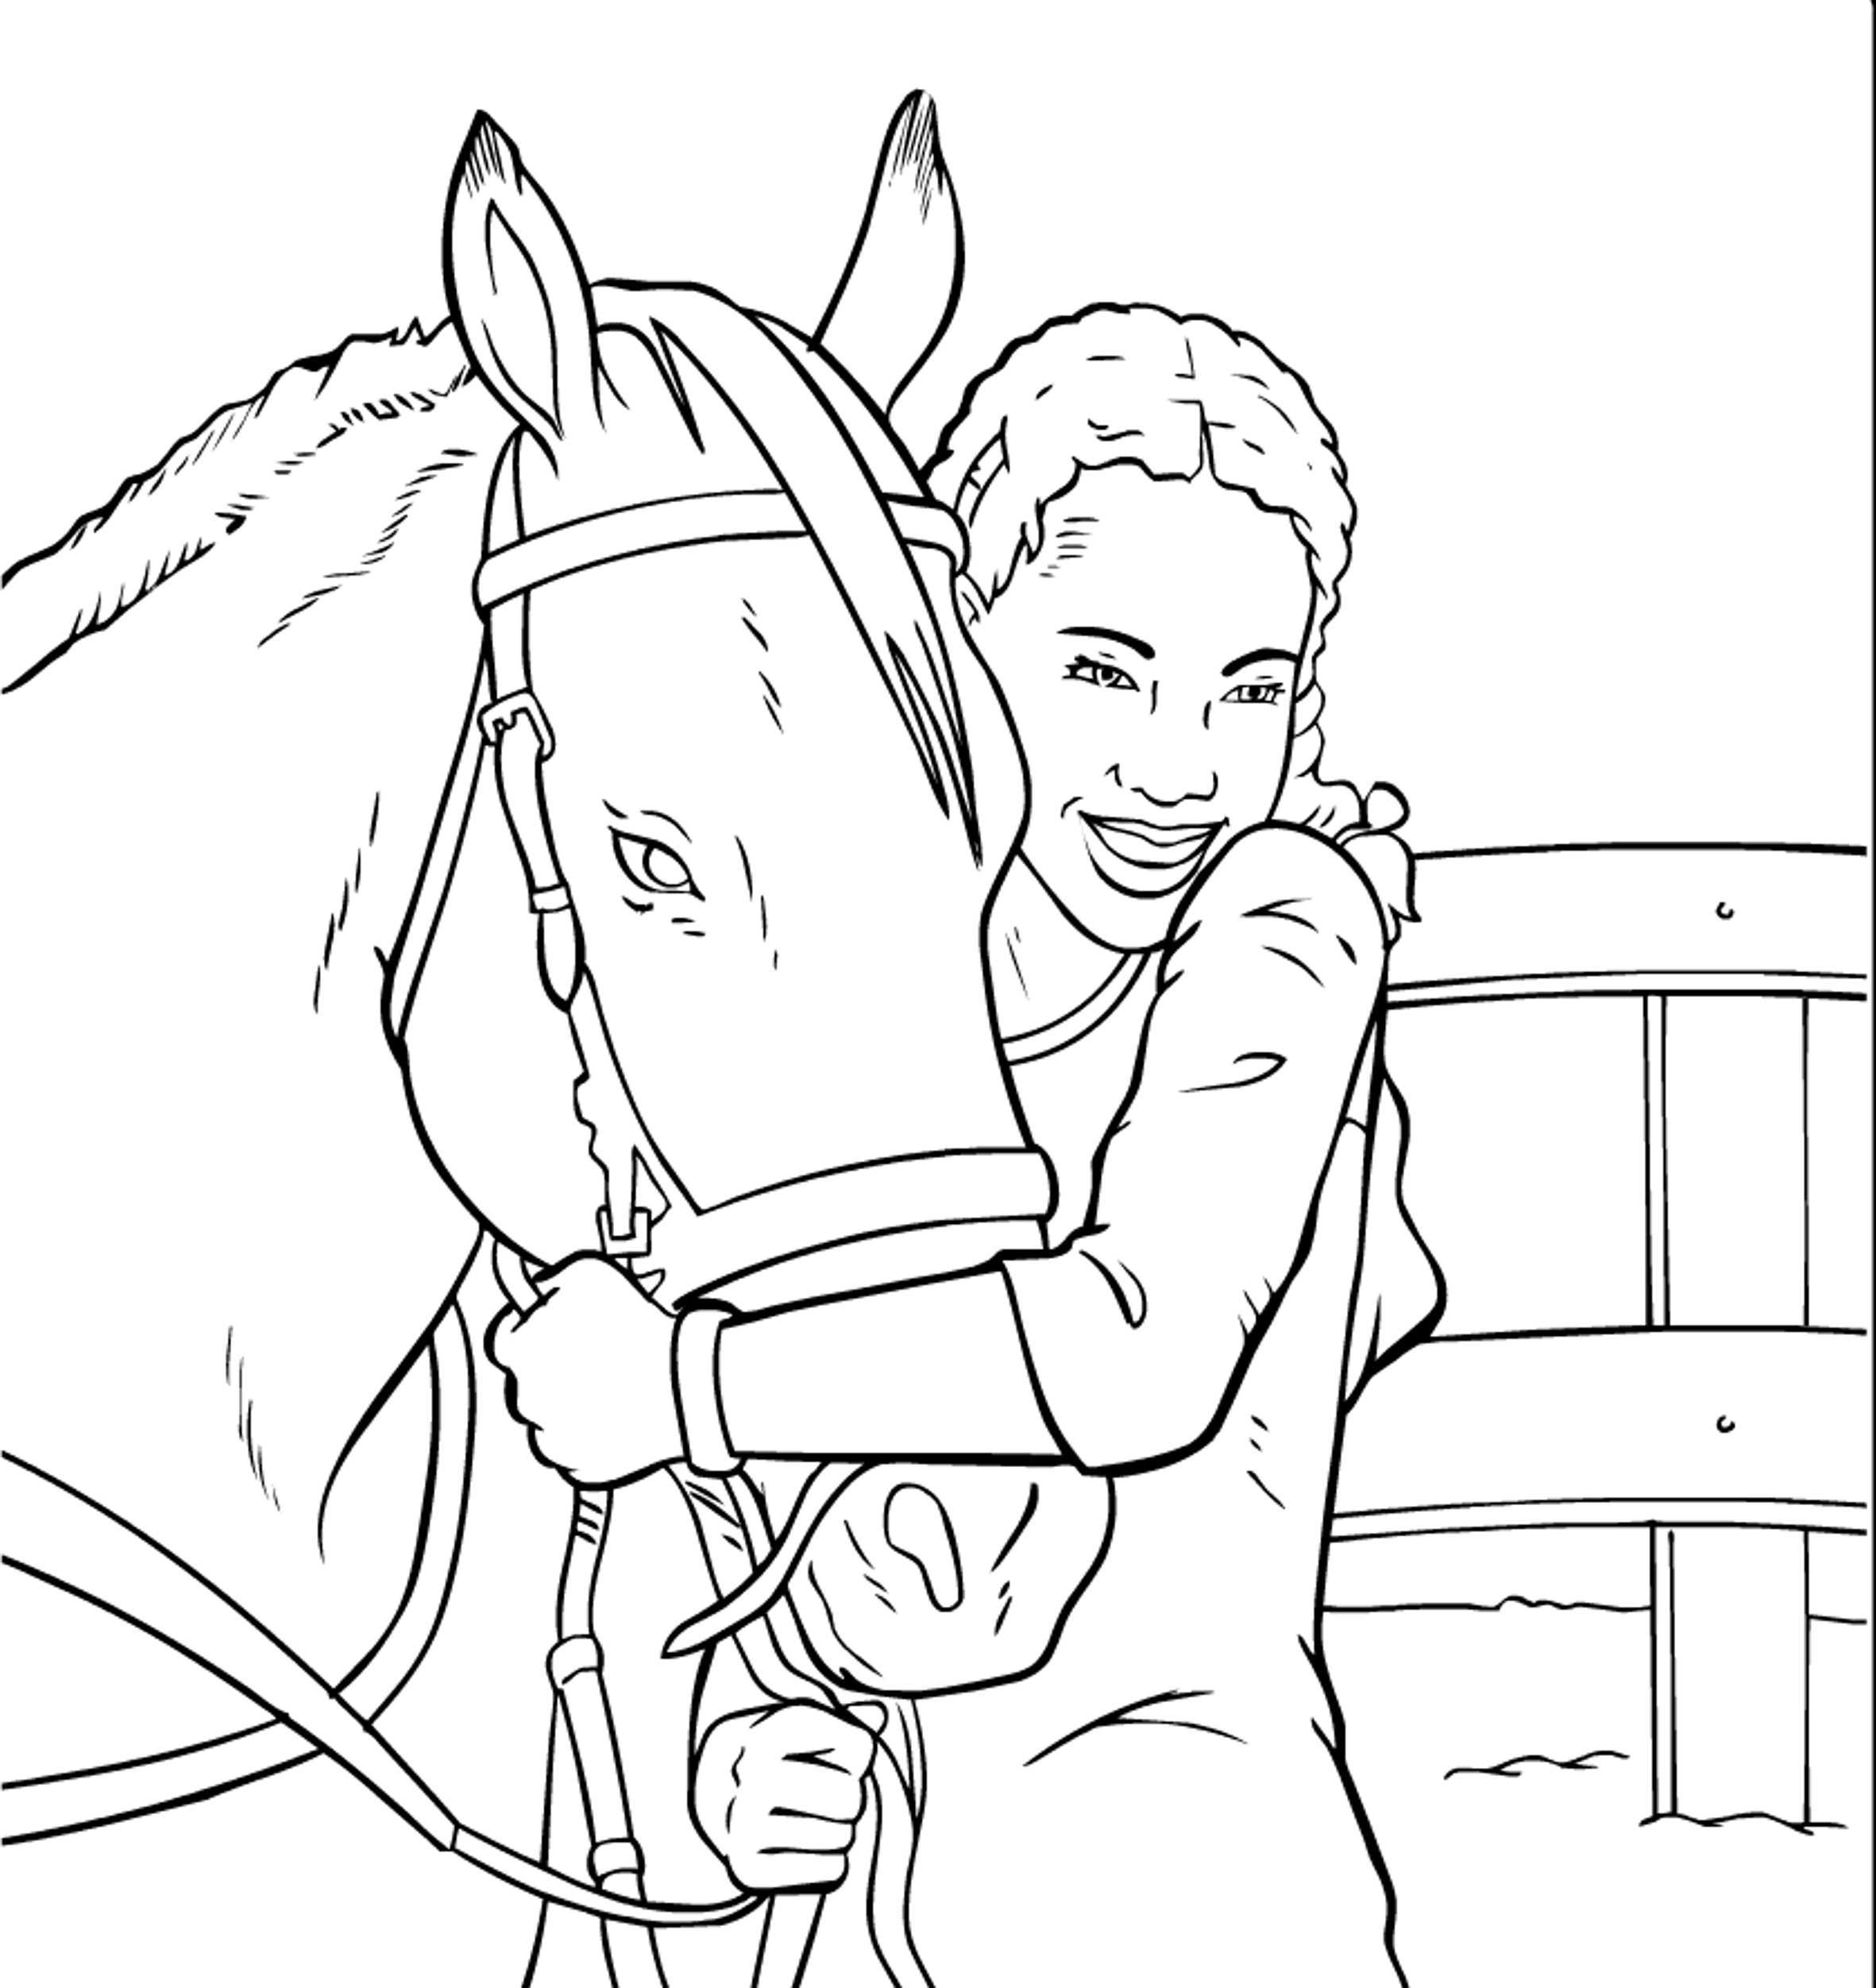 Coloriages Gratuits De La Serie Grand Galop Saddle Club Free